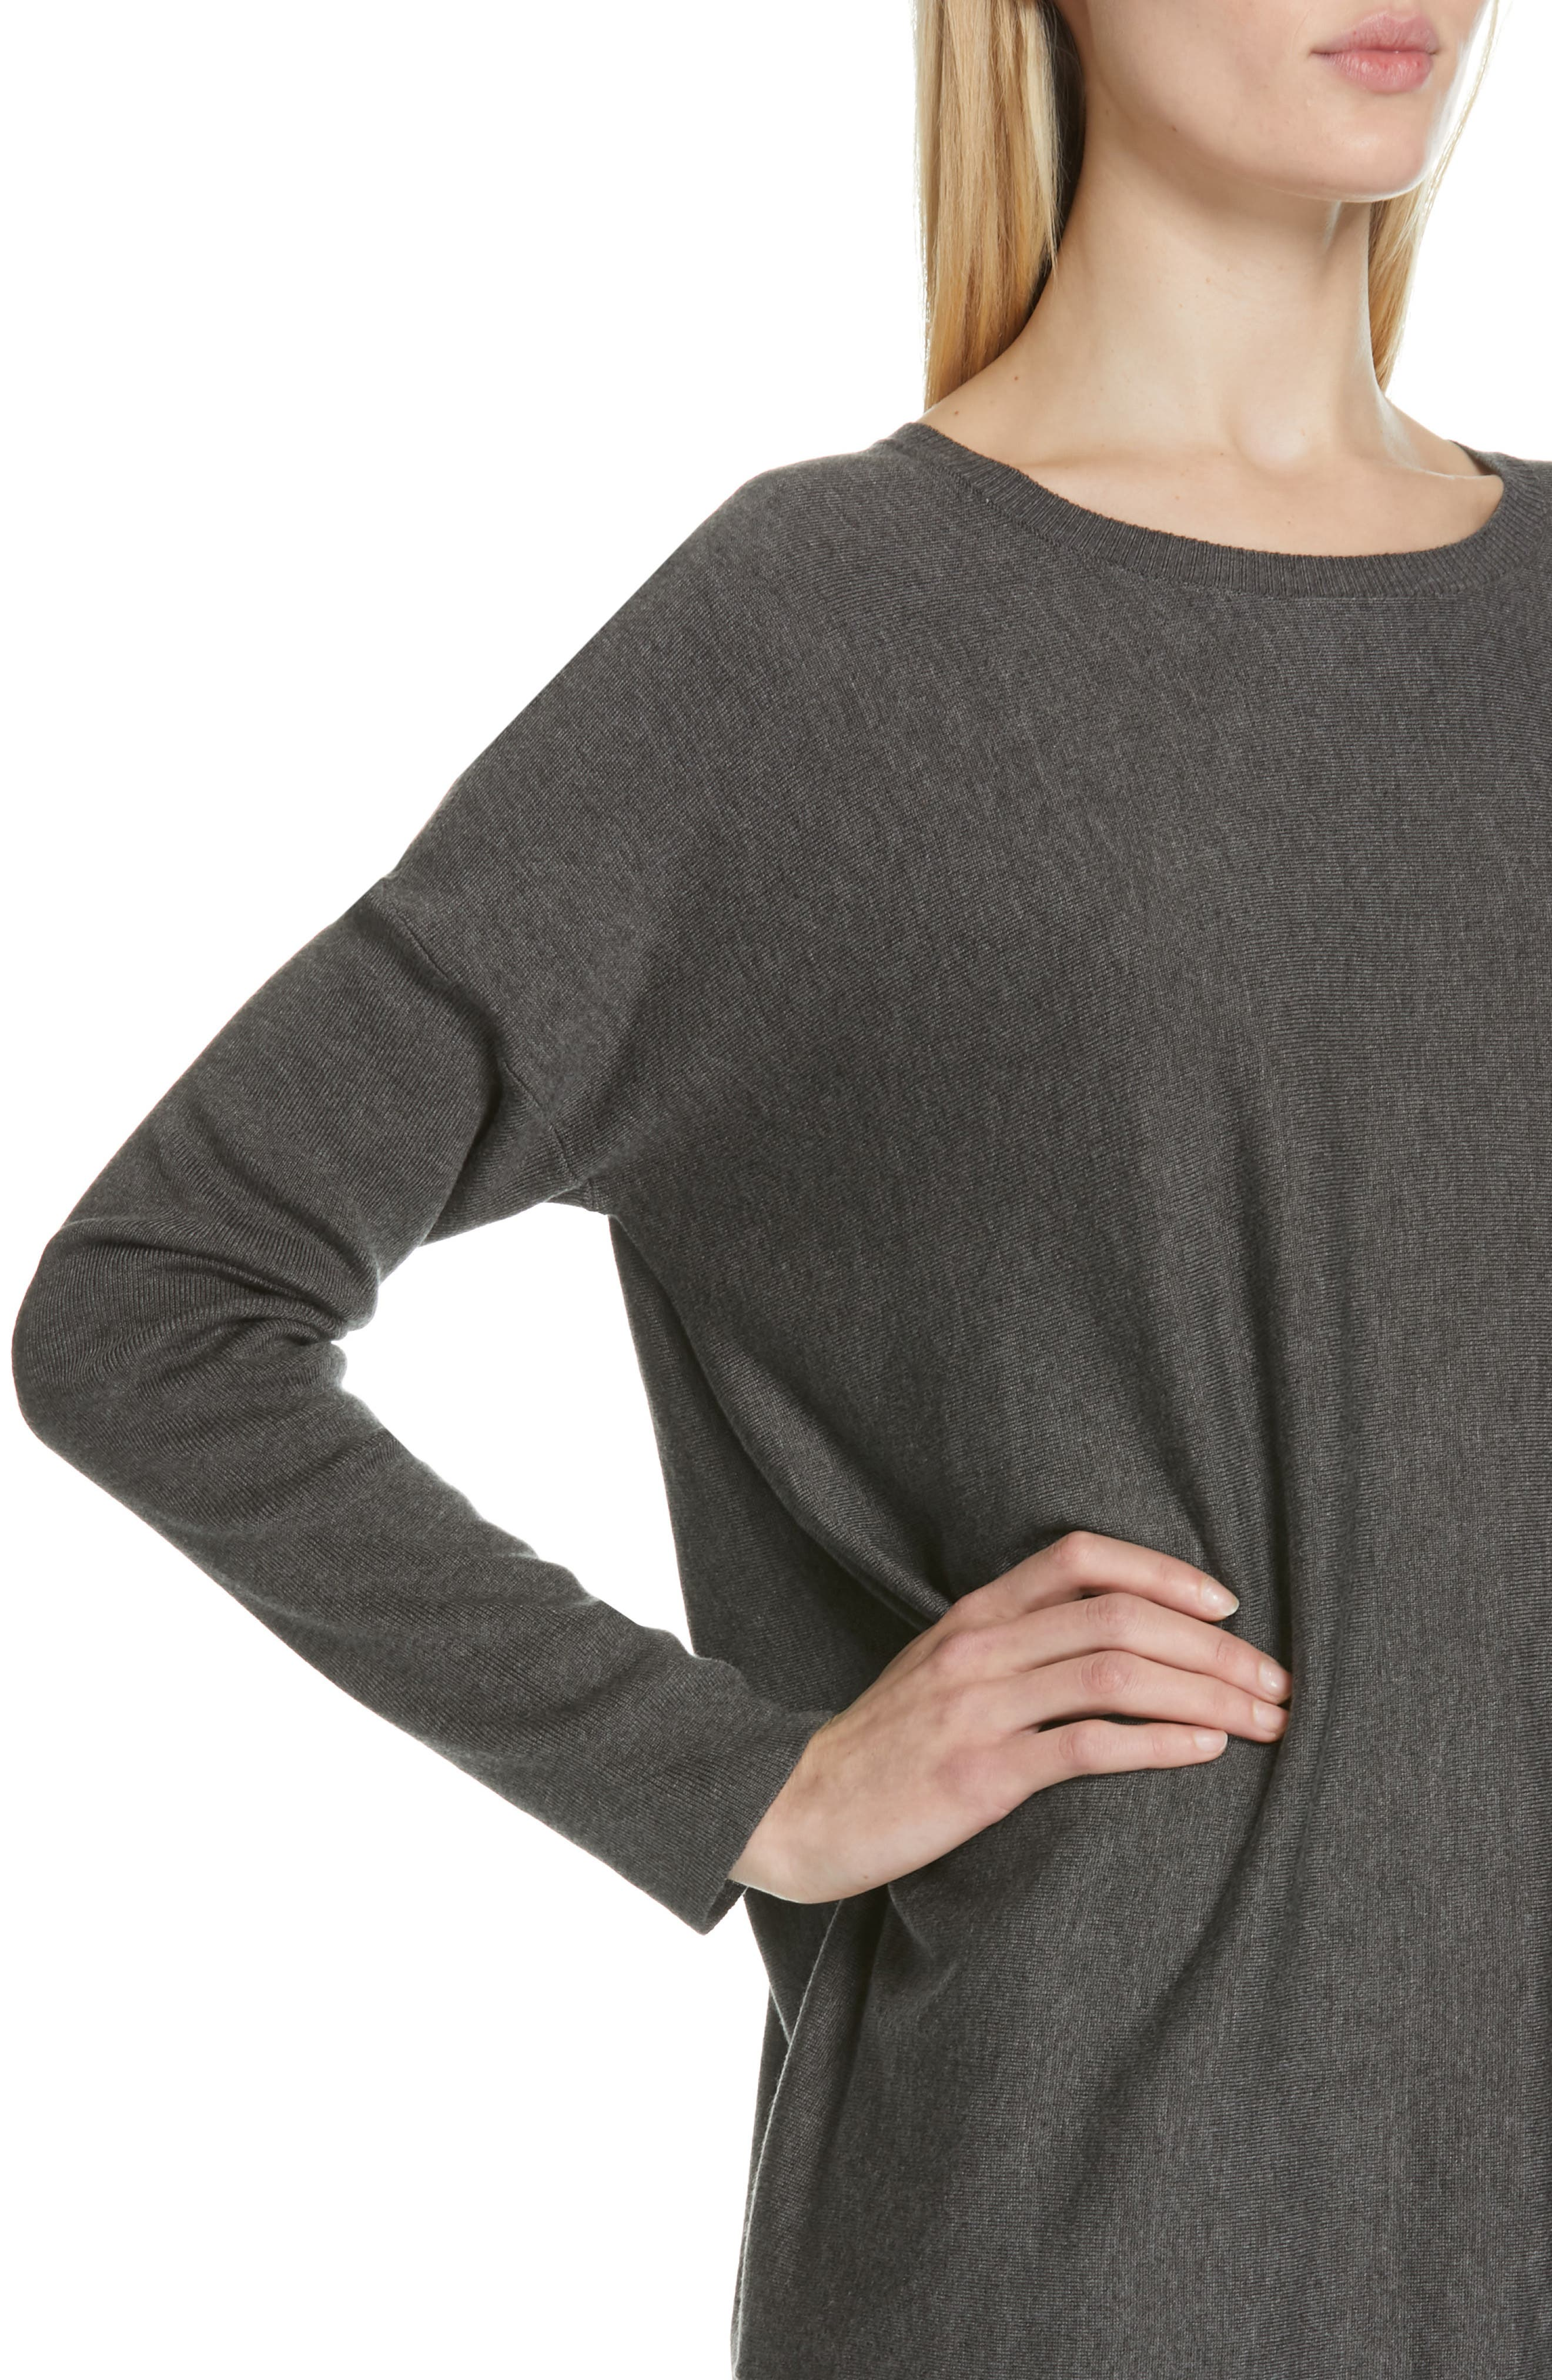 EILEEN FISHER, Tencel<sup>®</sup> Lyocell Blend Sweater, Alternate thumbnail 4, color, 030